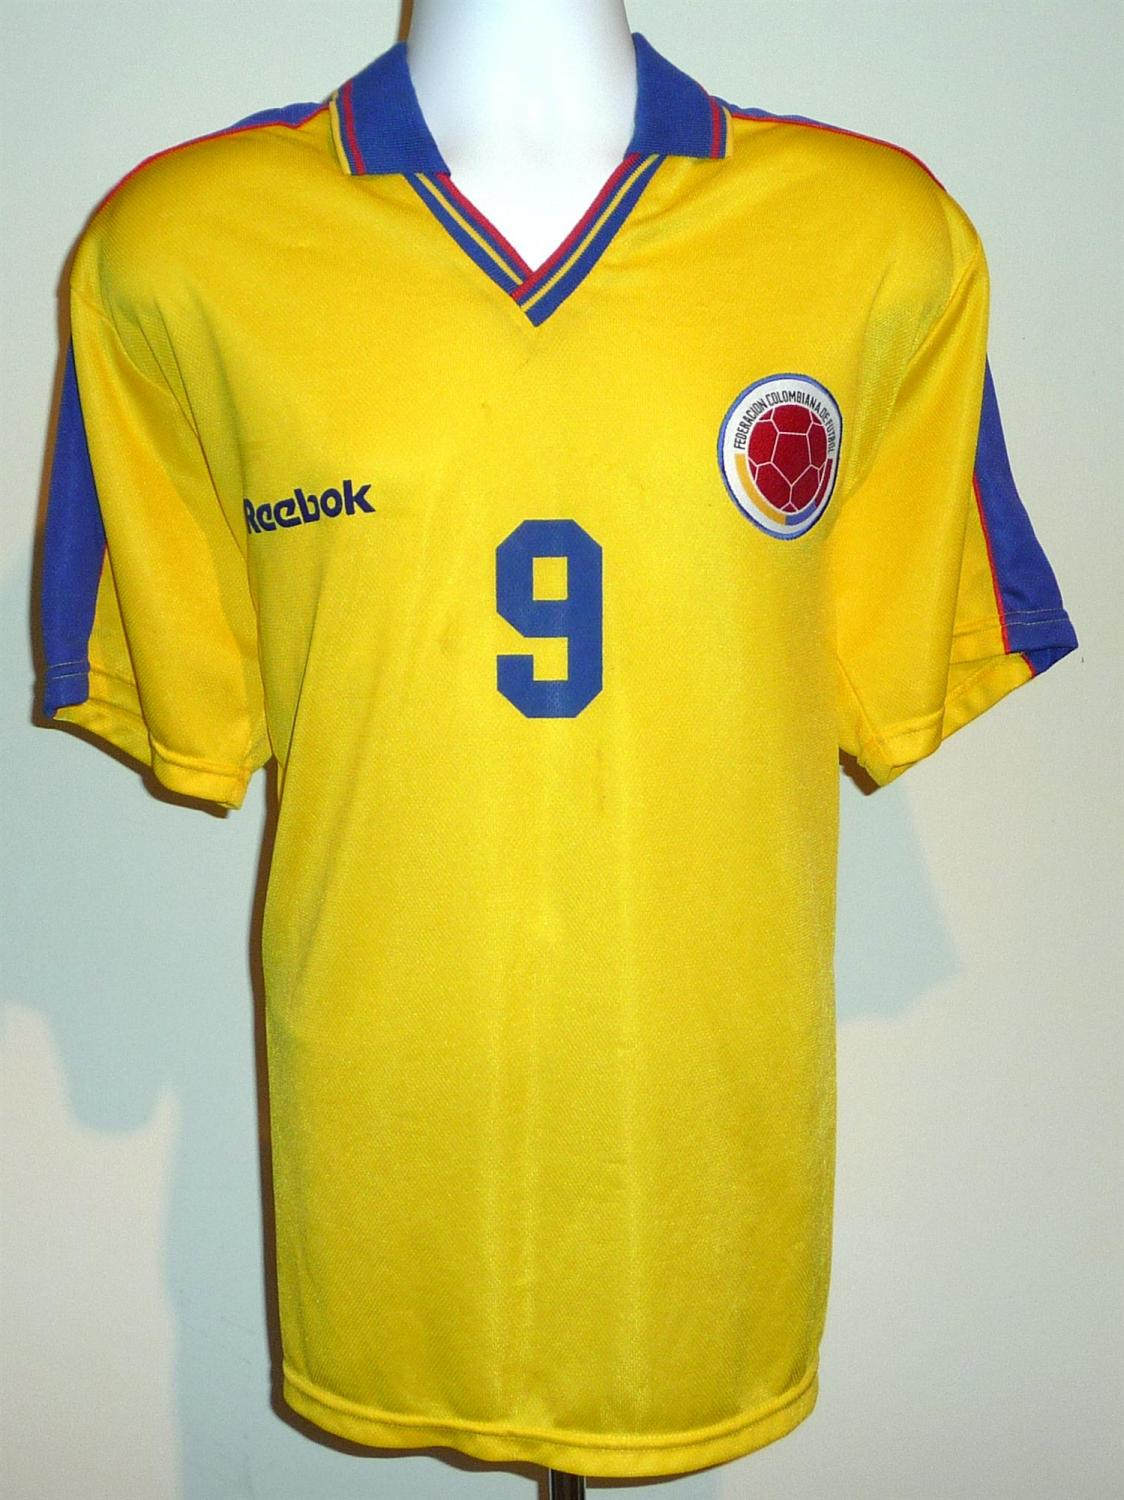 35645db7152 Colombia Home Maillot de foot 1998 - 2000.